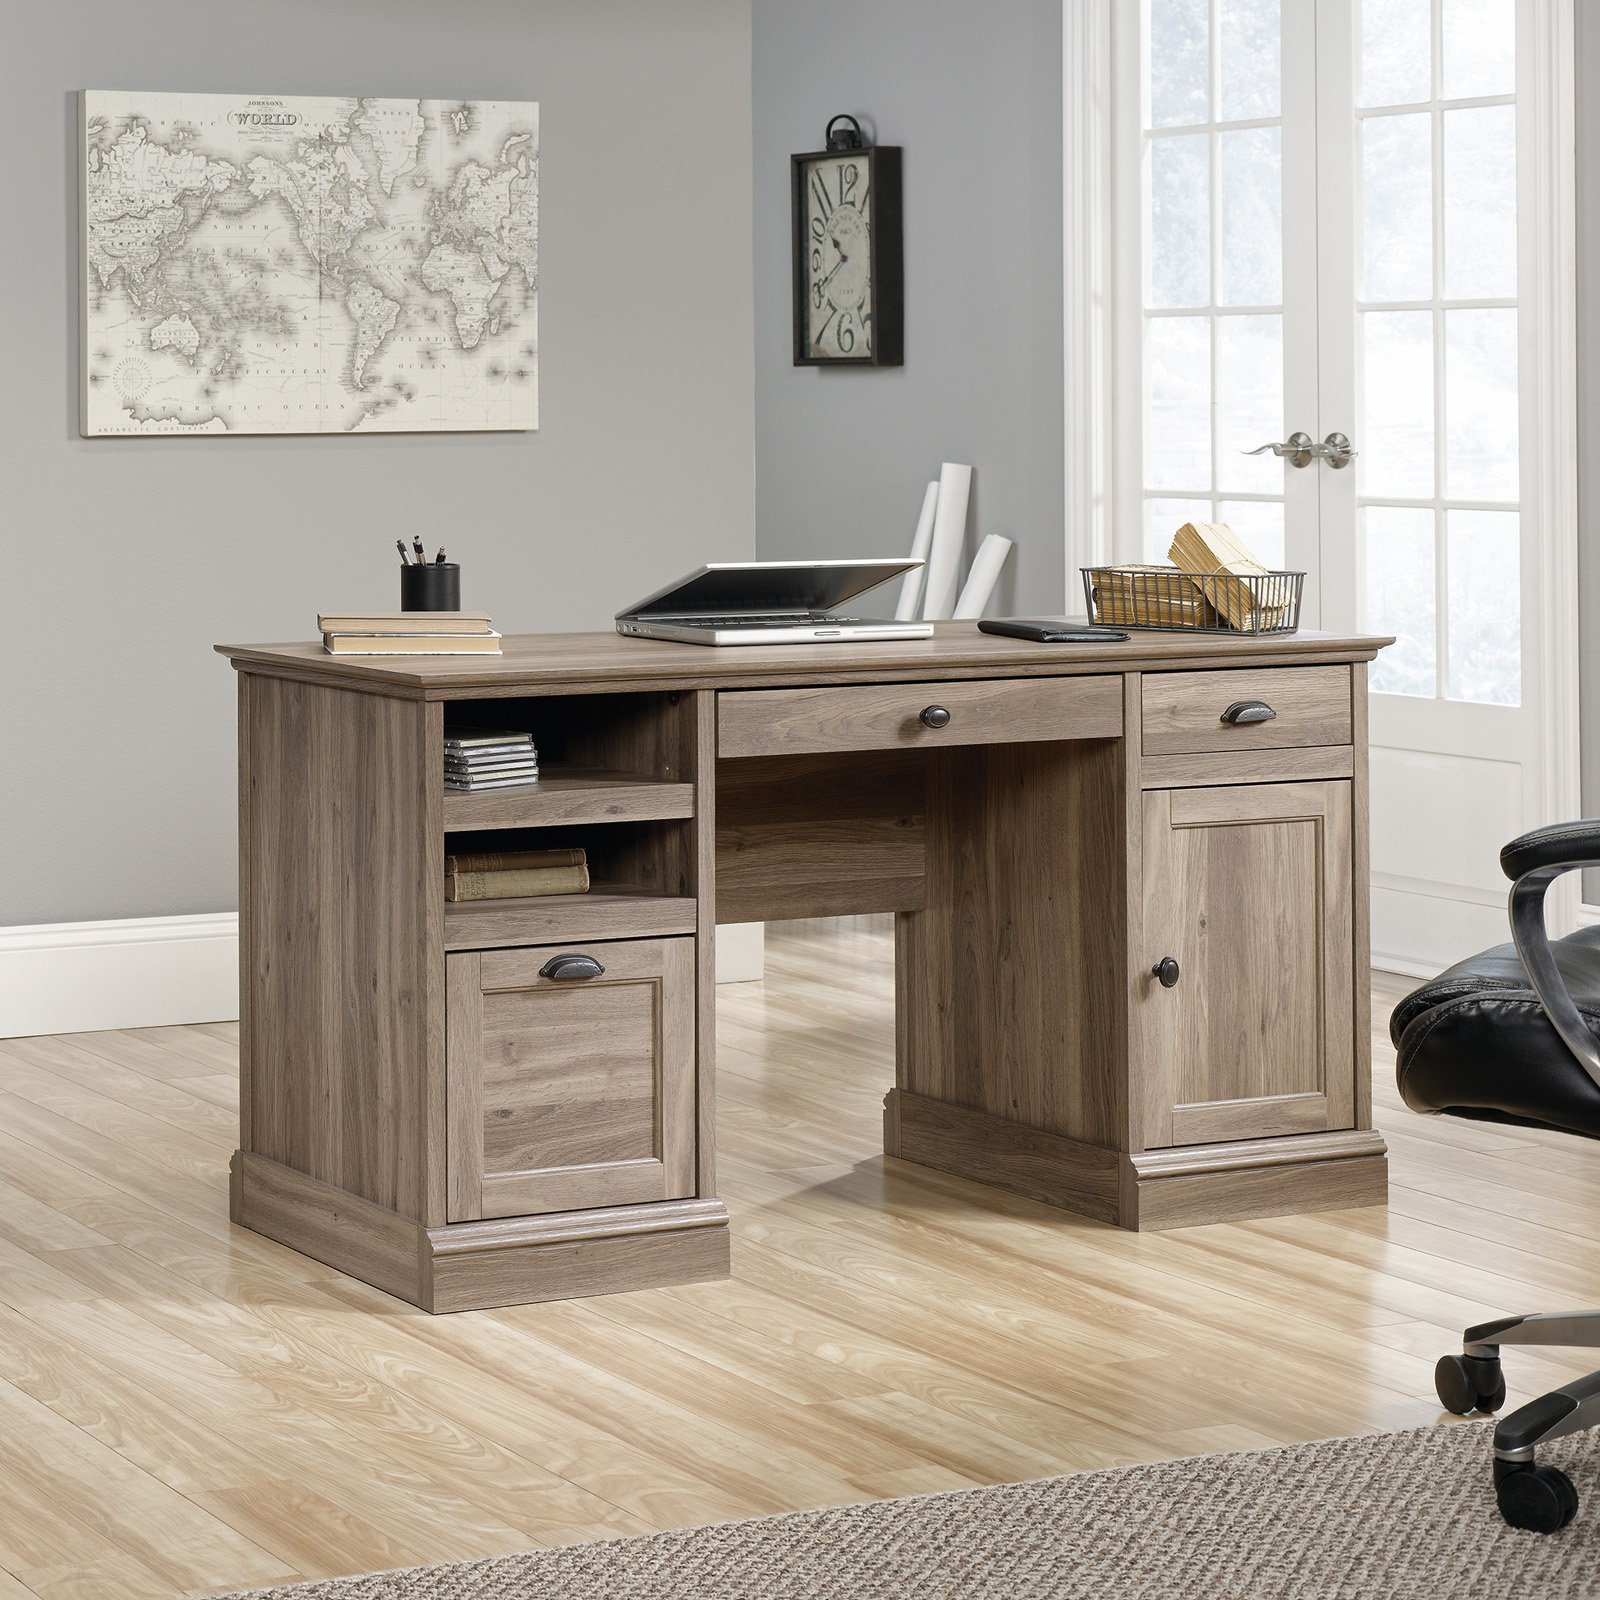 Sauder Barrister Lane Executive Desk, Salt Oak Finish by Sauder